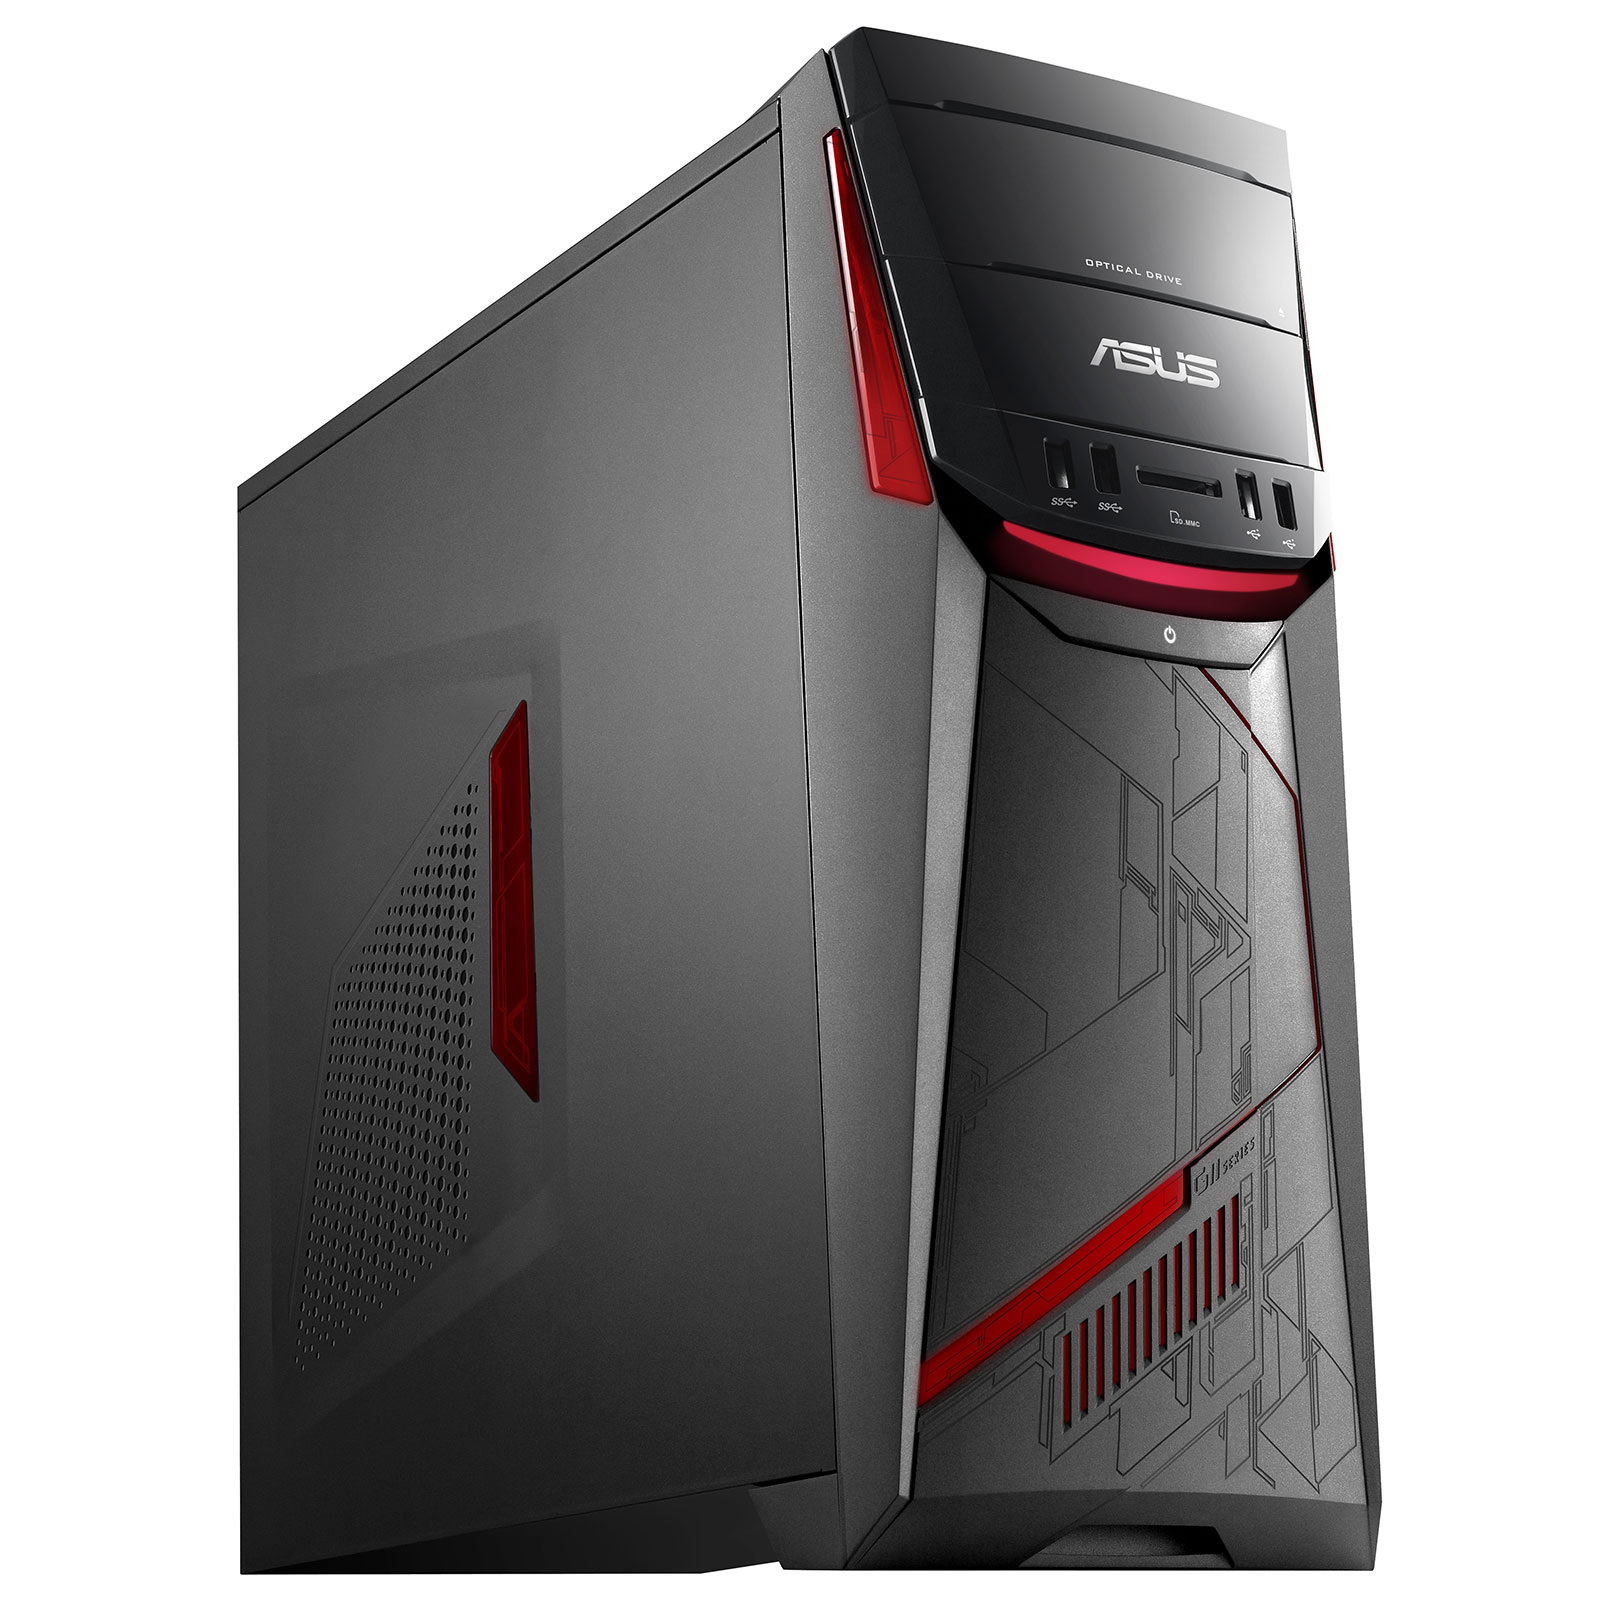 PC de bureau ASUS G11CD-K-FR039T Intel Core i5-7400 8 Go HDD 1 To NVIDIA GeForce GTX 1050 2 Go Graveur DVD Wi-Fi AC/Bluetooth Windows 10 Famille 64 bits (sans écran)